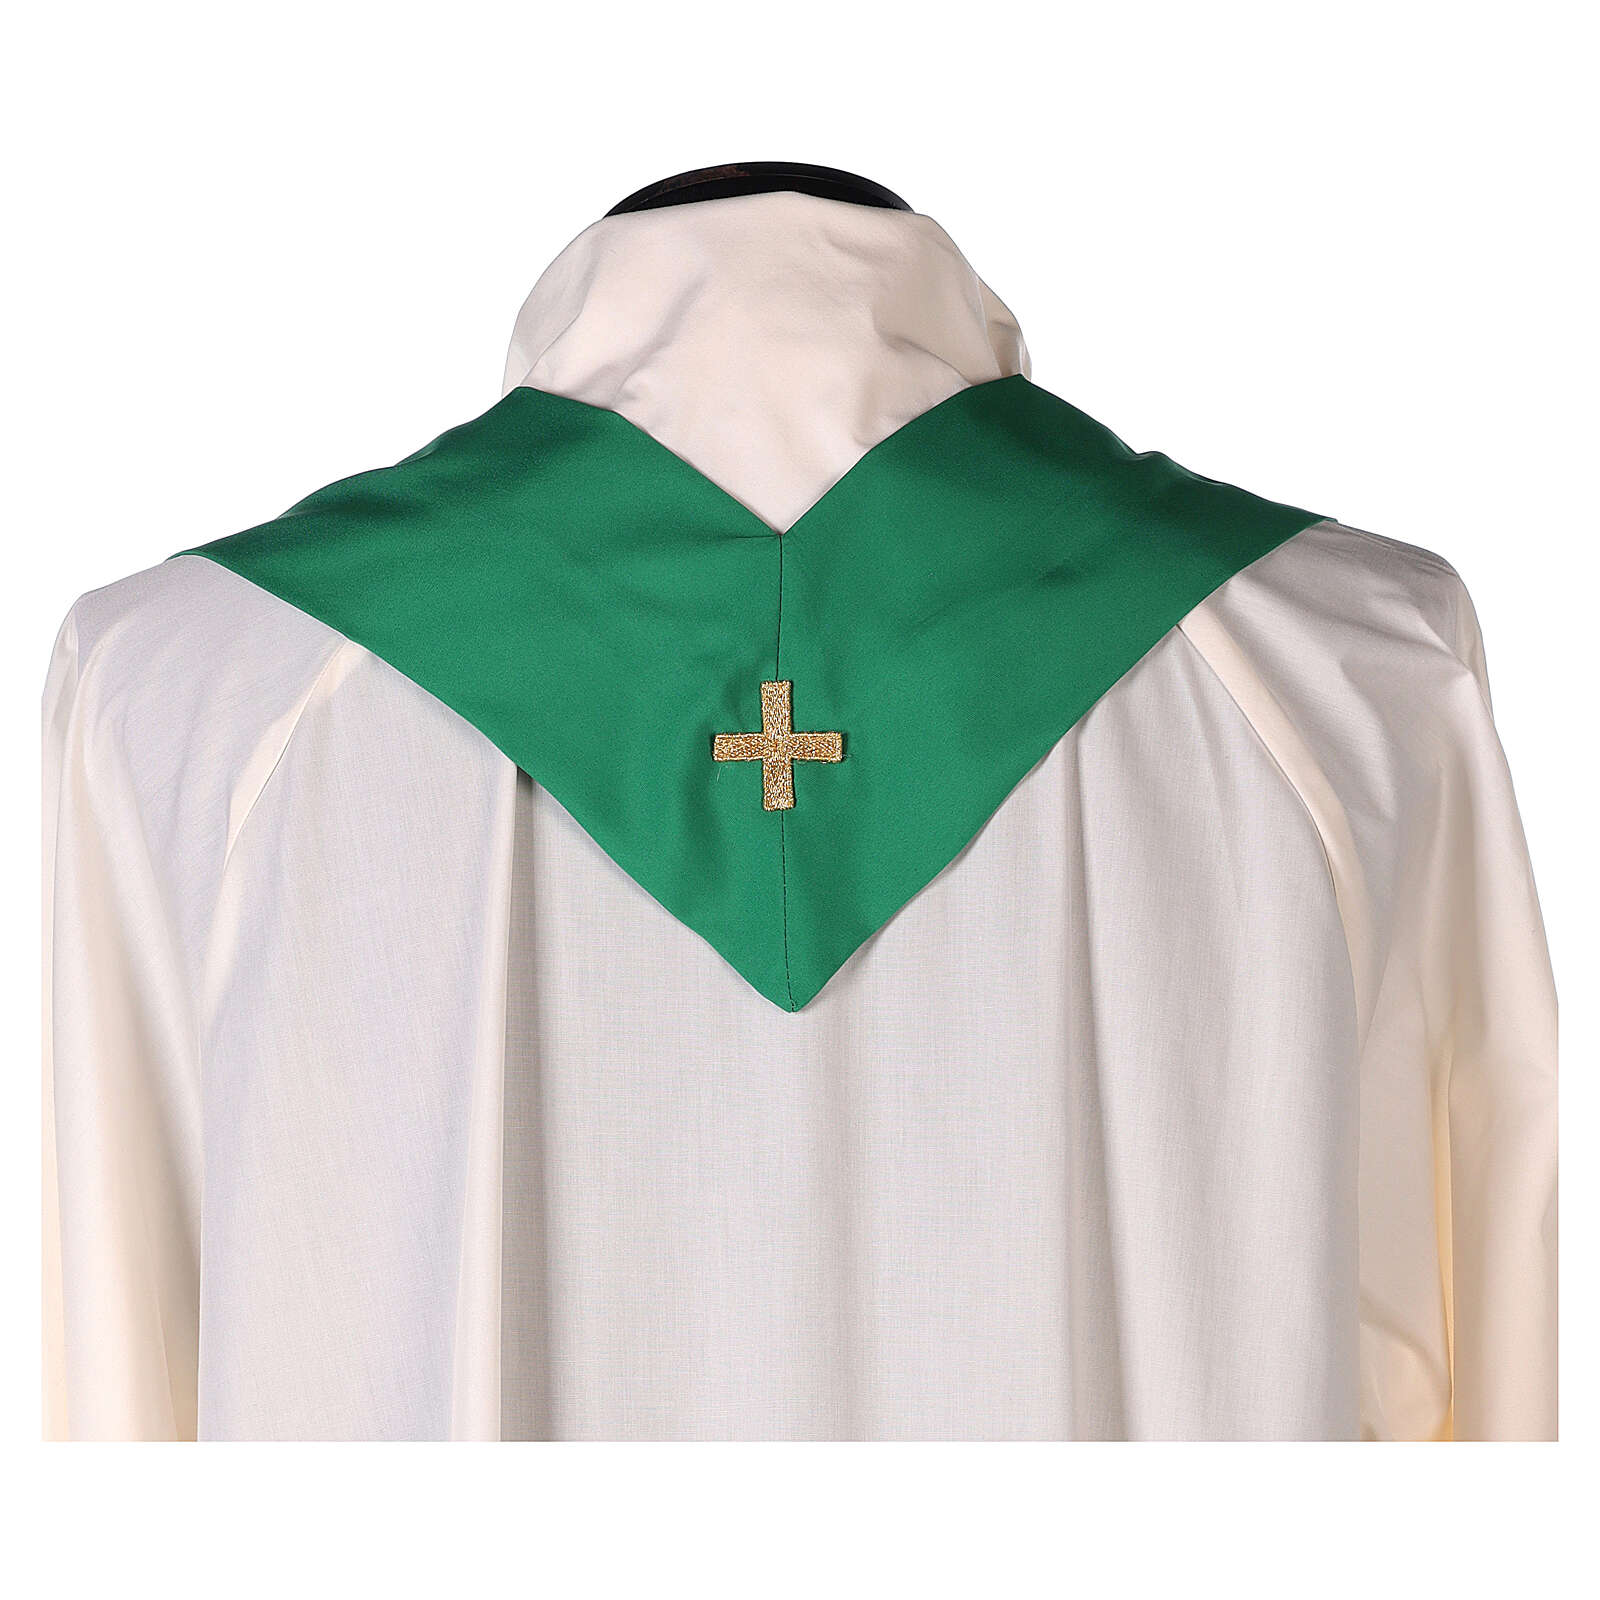 Set 4 chasubles polyester 4 couleurs IHS croix rayons PROMO 4